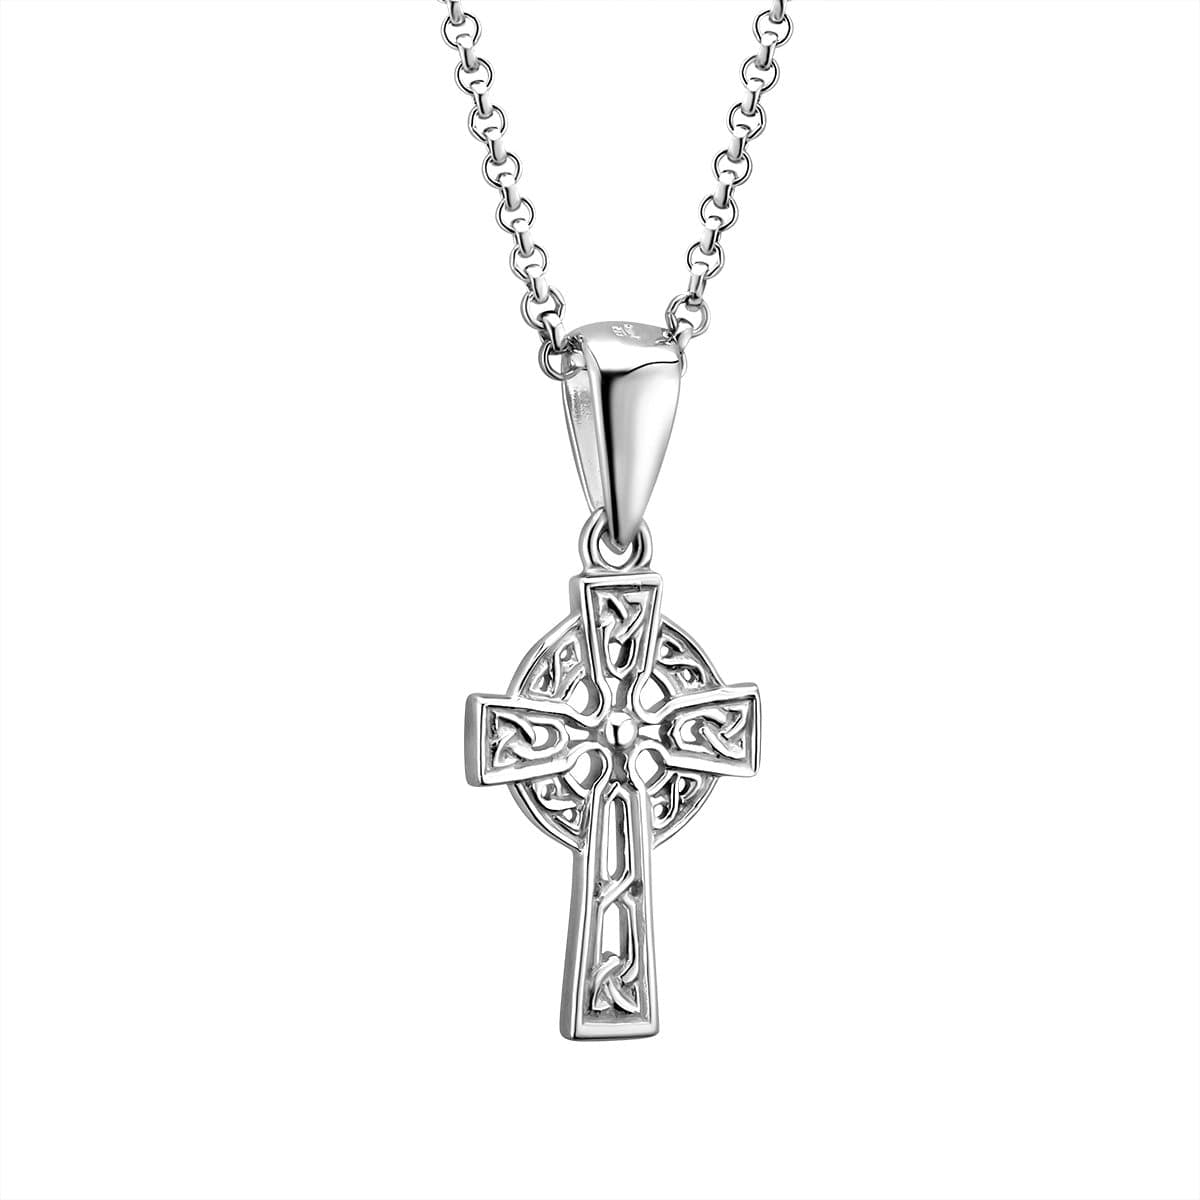 "Sterling Silver Celtic Cross Necklace Hallmarked at Irish Assay Office in Dublin Castle Available In 18"", 20"" and 24"" Lengths with 2"" Extension Chain & Easy to Use Lobster Clasp Made in Ireland"